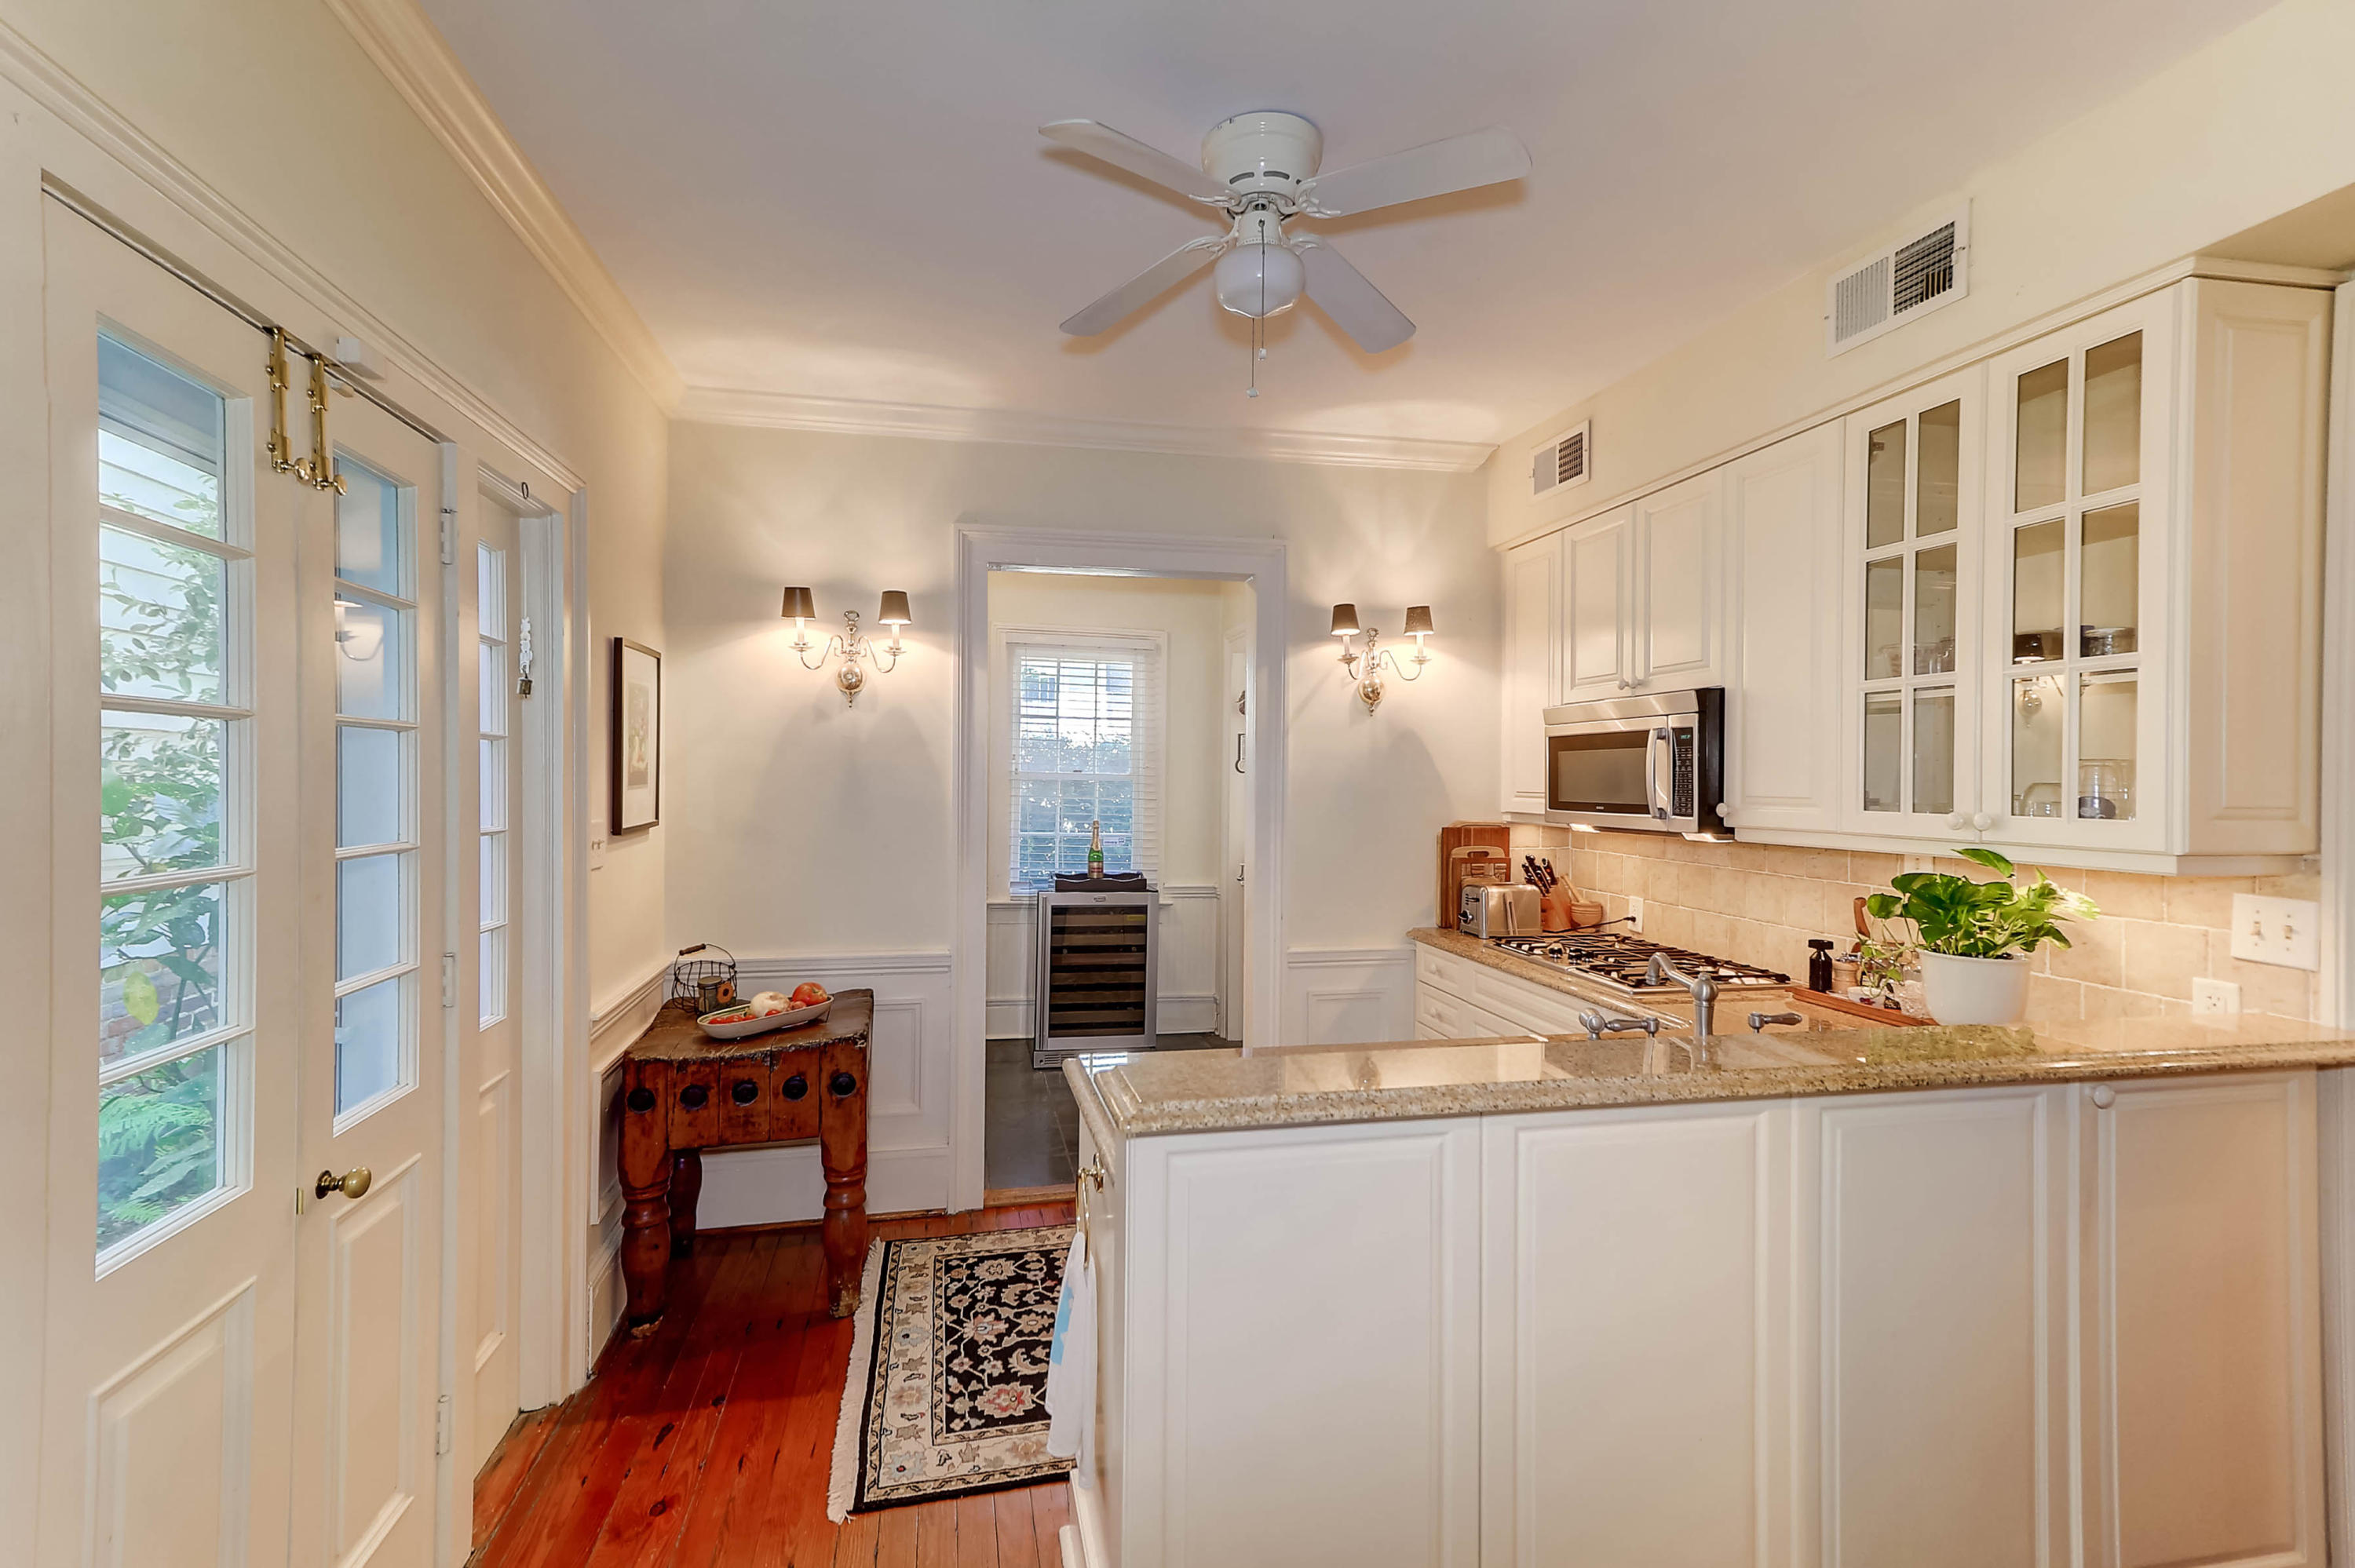 South of Broad Homes For Sale - 130 1/2 Tradd, Charleston, SC - 20